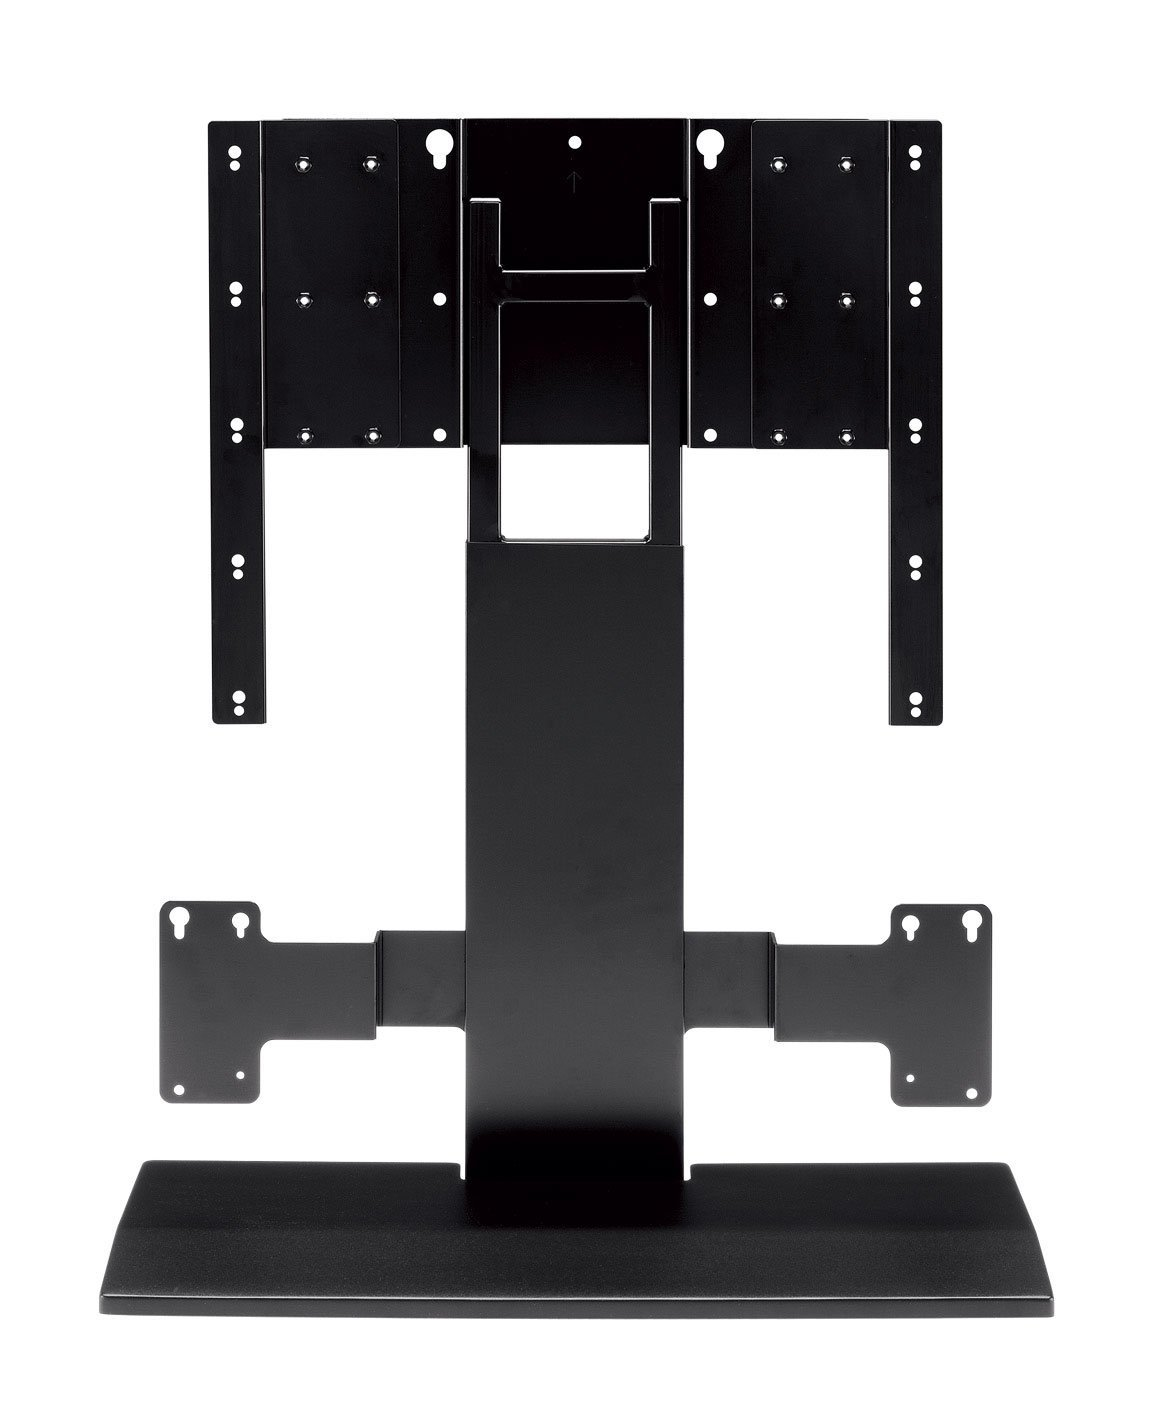 pro signal mount in stand pakistan tv flat wall products image screen for televisions universal pedestal base zoom flatscreen